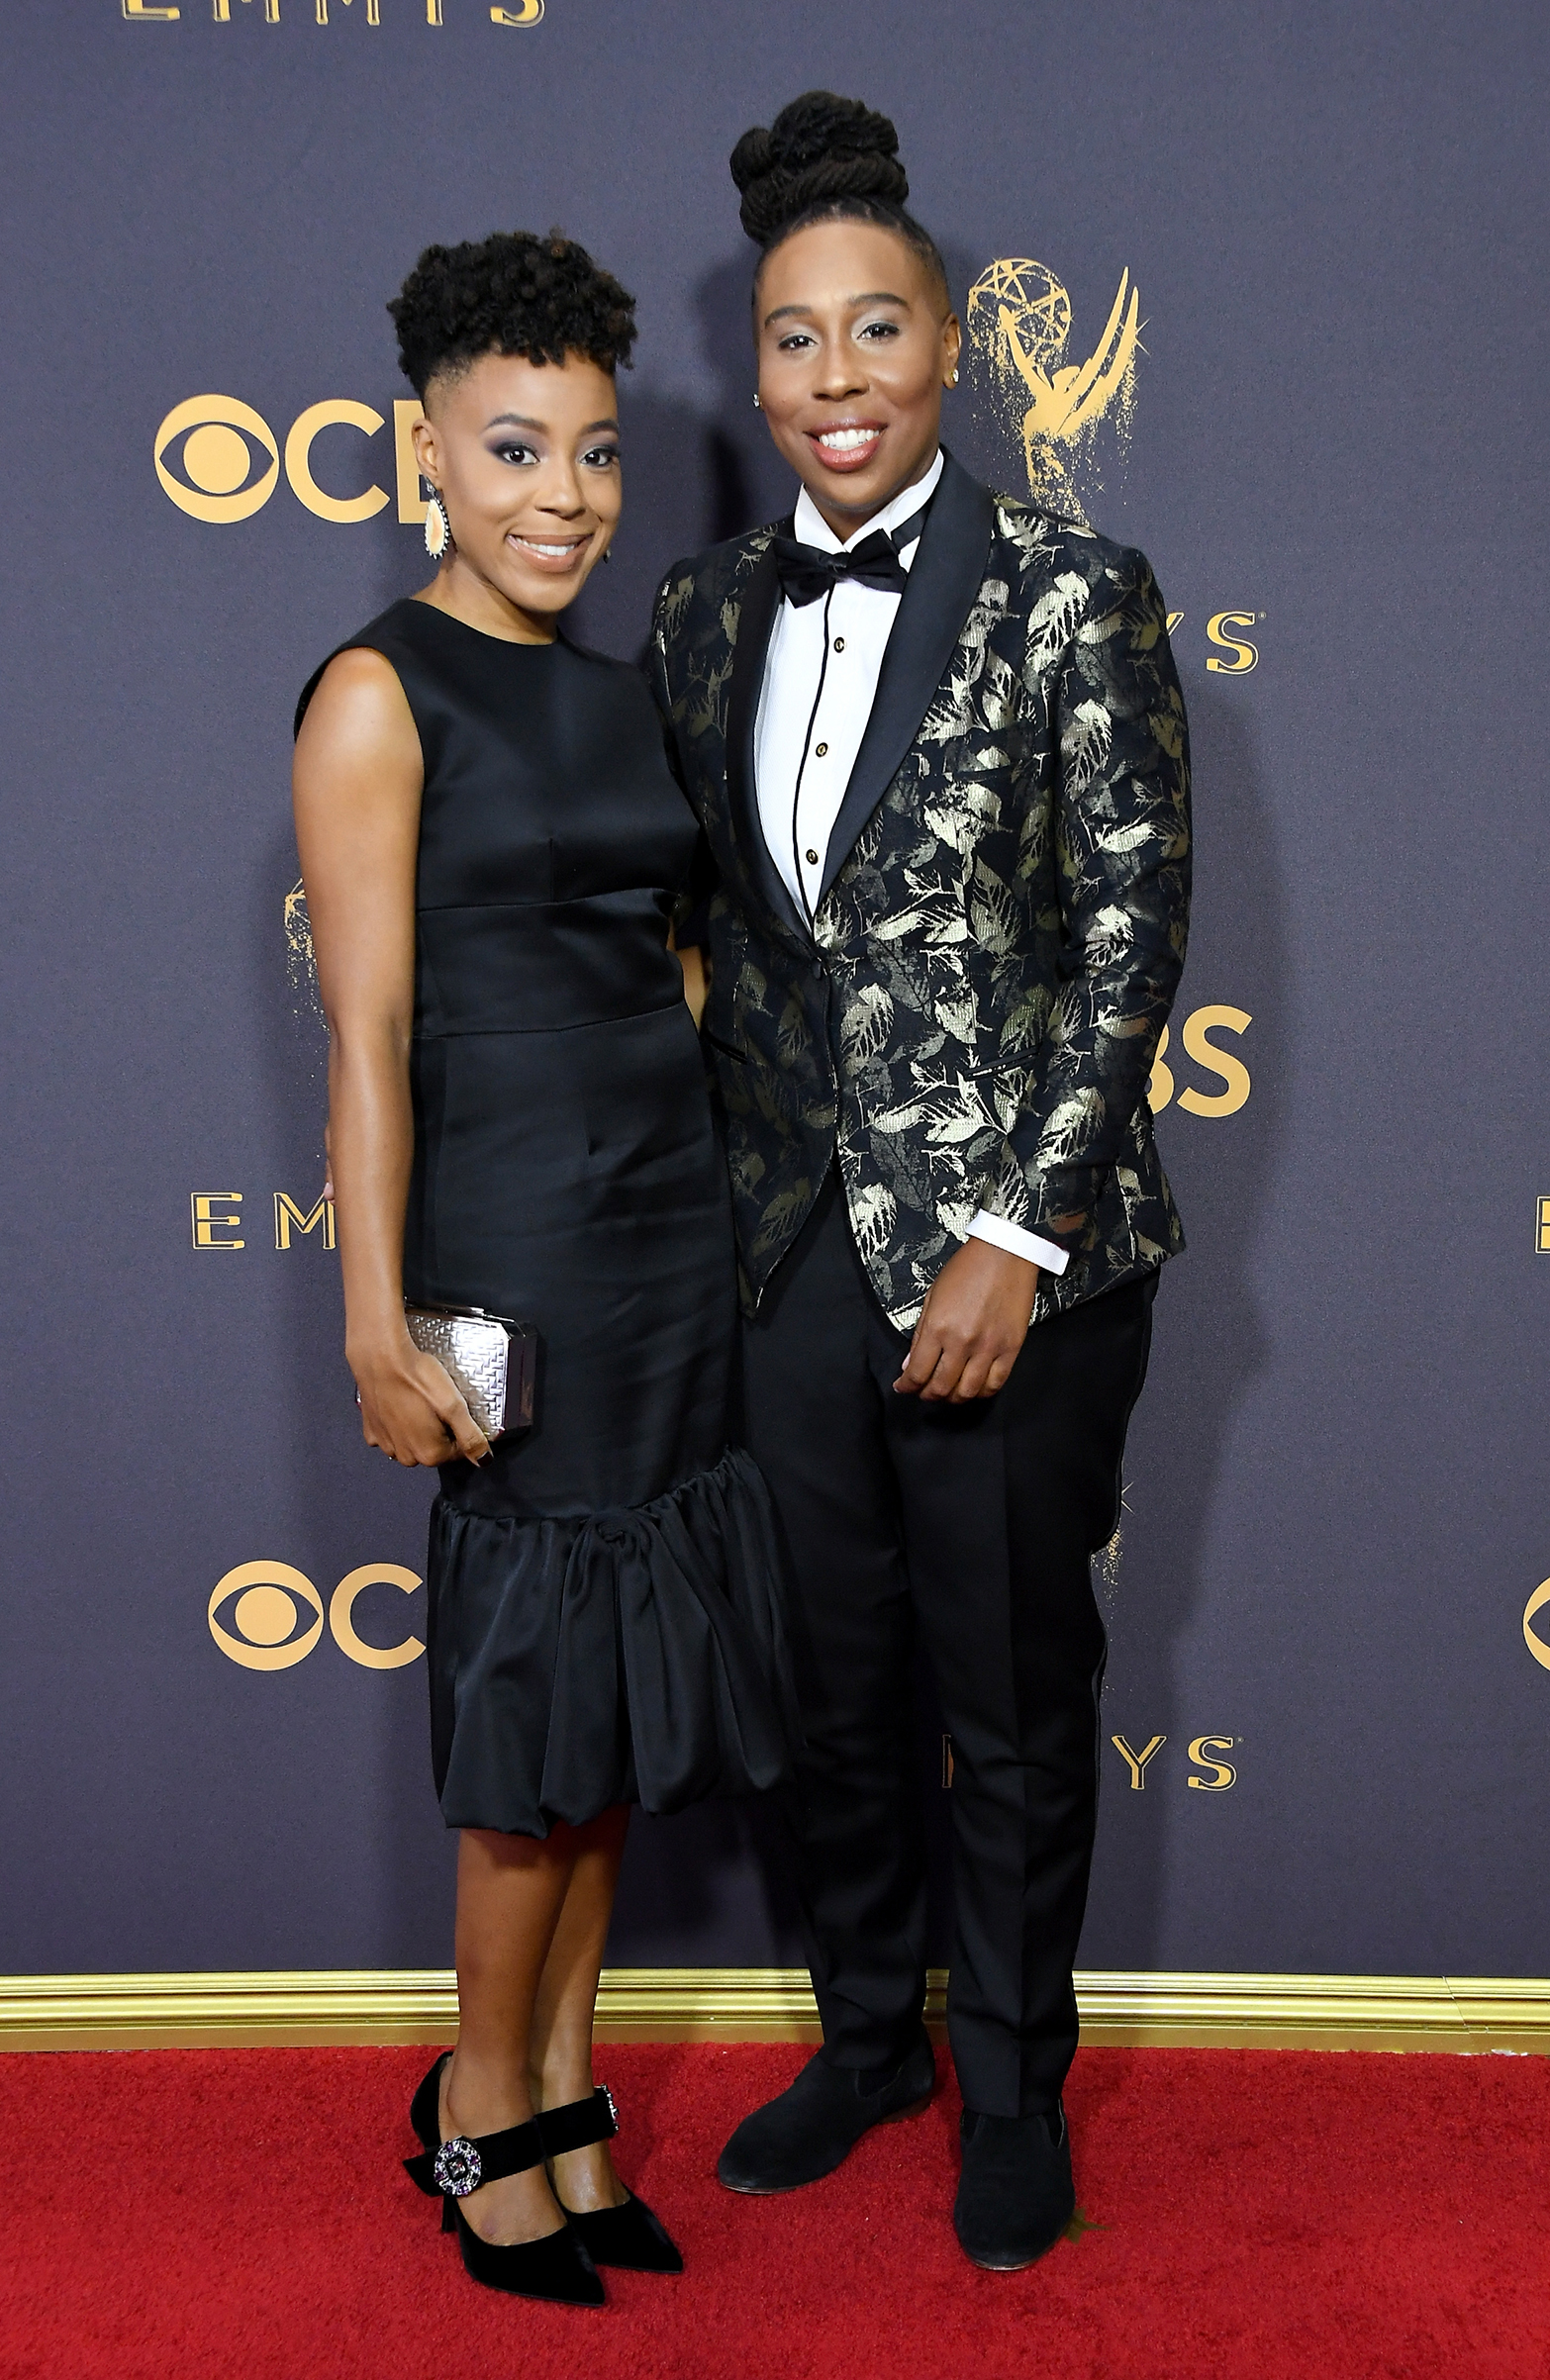 Alana Mayo (L) and Lena Waithe attend the 69th Annual Primetime Emmy Awards at Microsoft Theater on September 17, 2017 in Los Angeles, California.